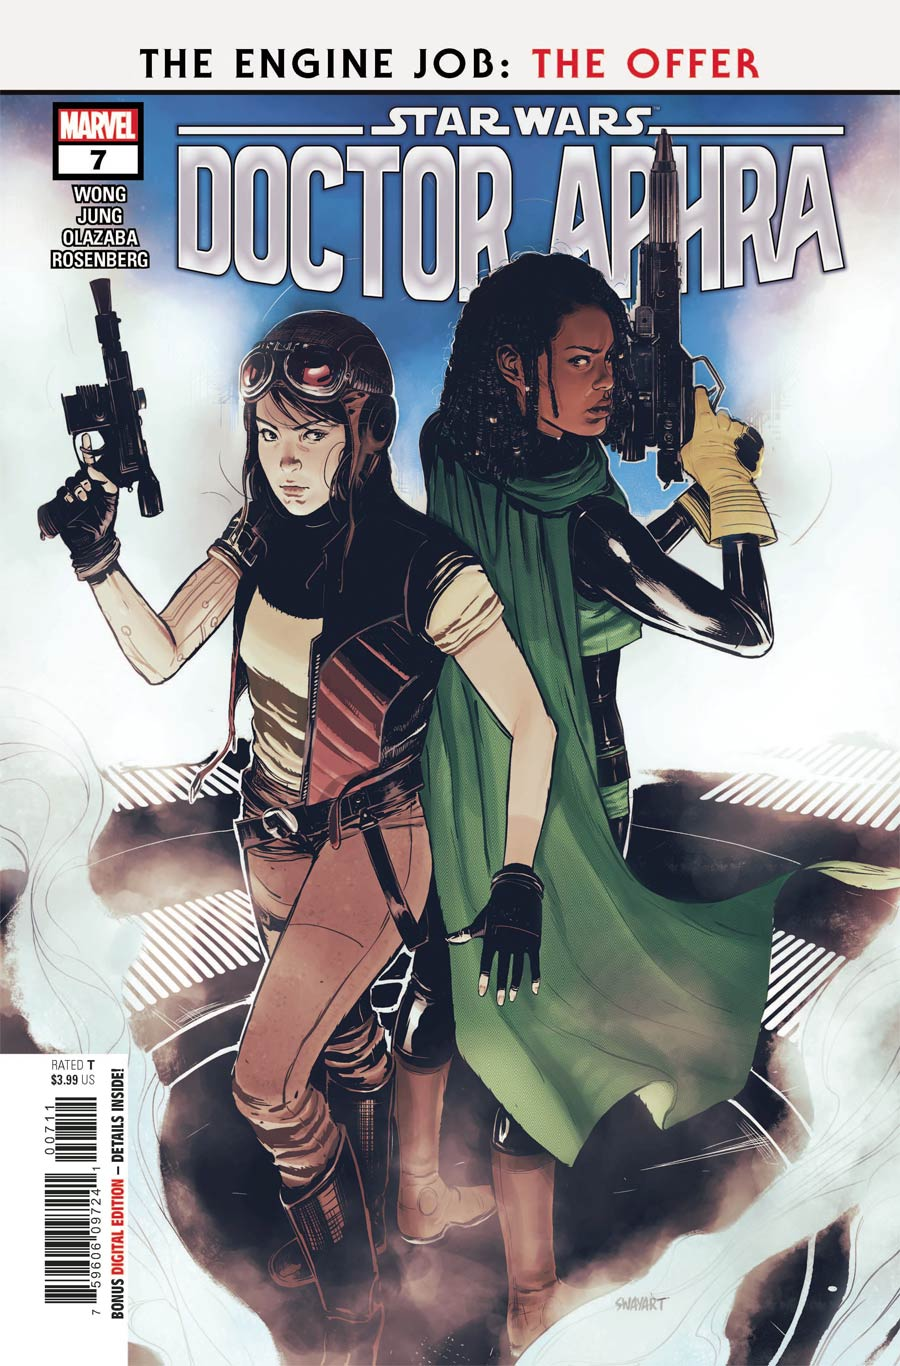 Star Wars Doctor Aphra Vol 2 #7 Cover A Regular Sway Cover (Limit 1 Per Customer)